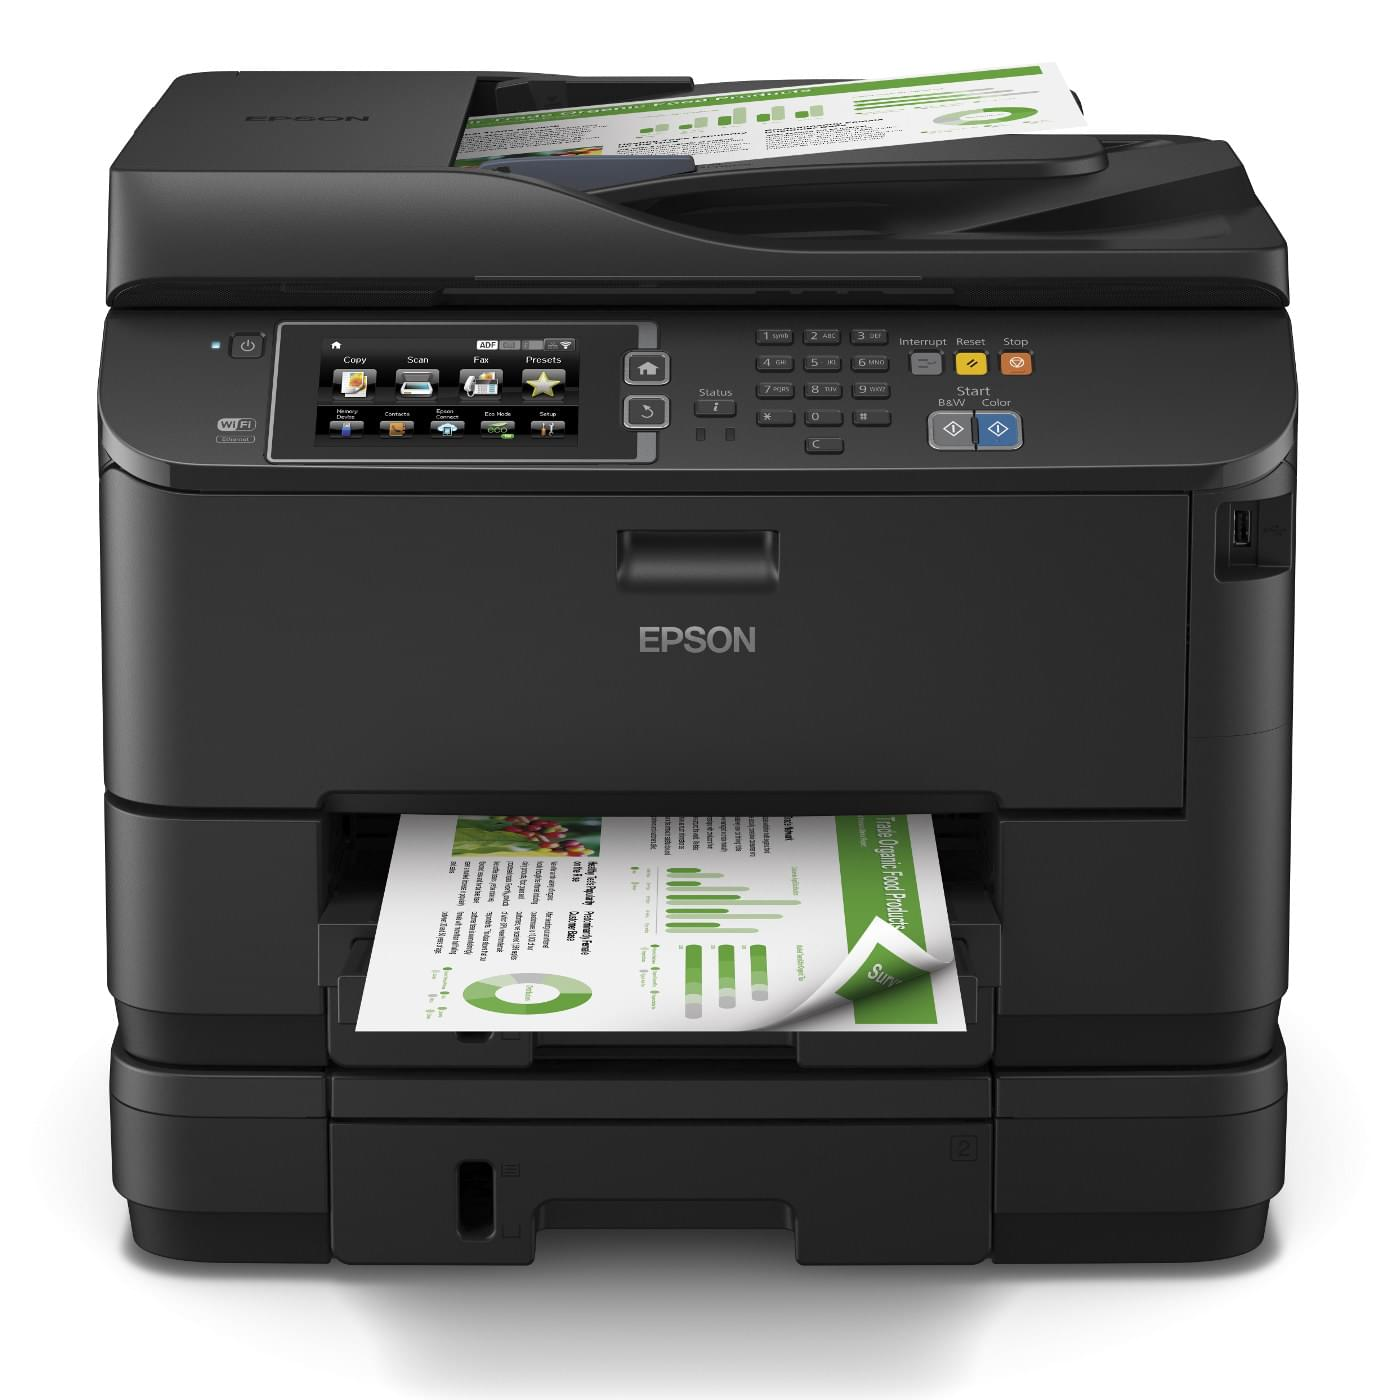 Imprimante multifonction Epson WorkForce WF-4640DTWF - Cybertek.fr - 0